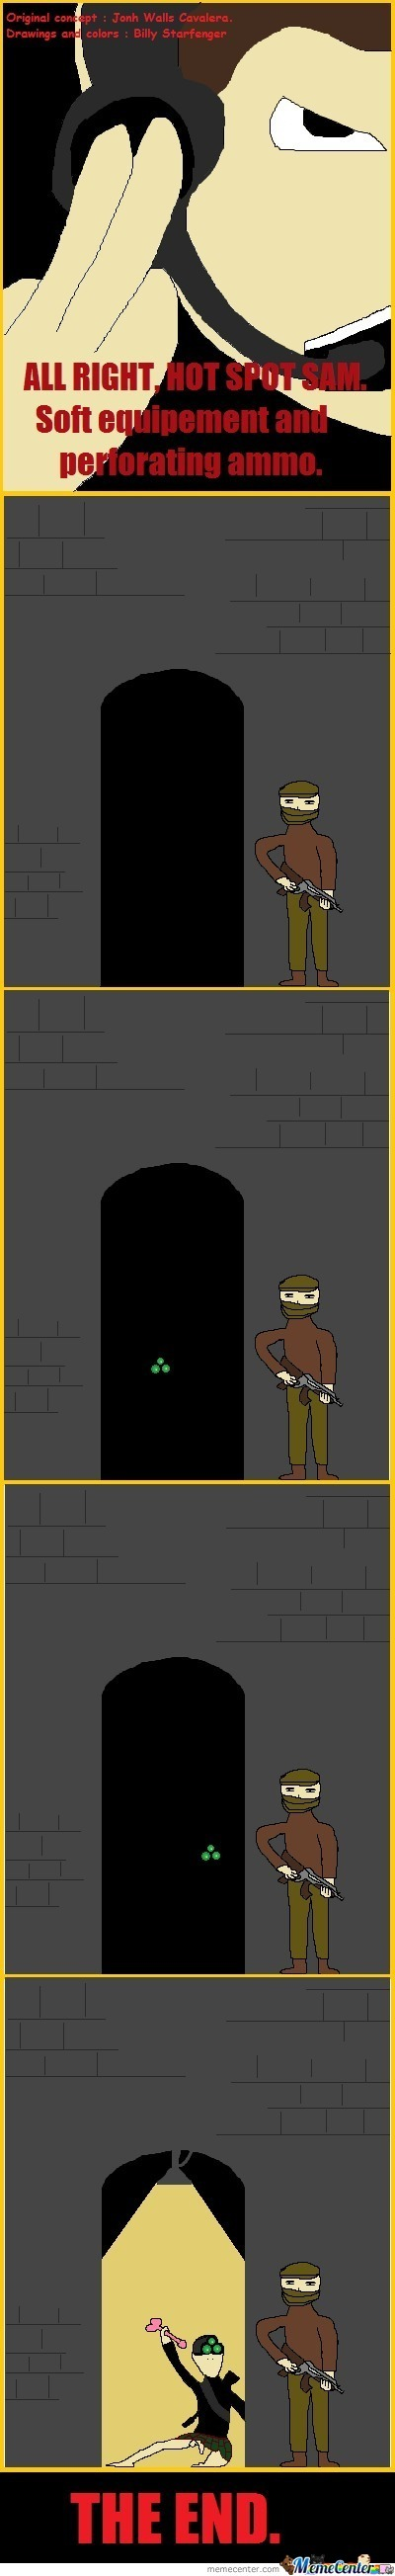 """Here Come The New Adventures Of Echelon4 : """" Hot Spot """". Special Guest : Sam Fisher. Sincerly Yours, Powr_Age."""